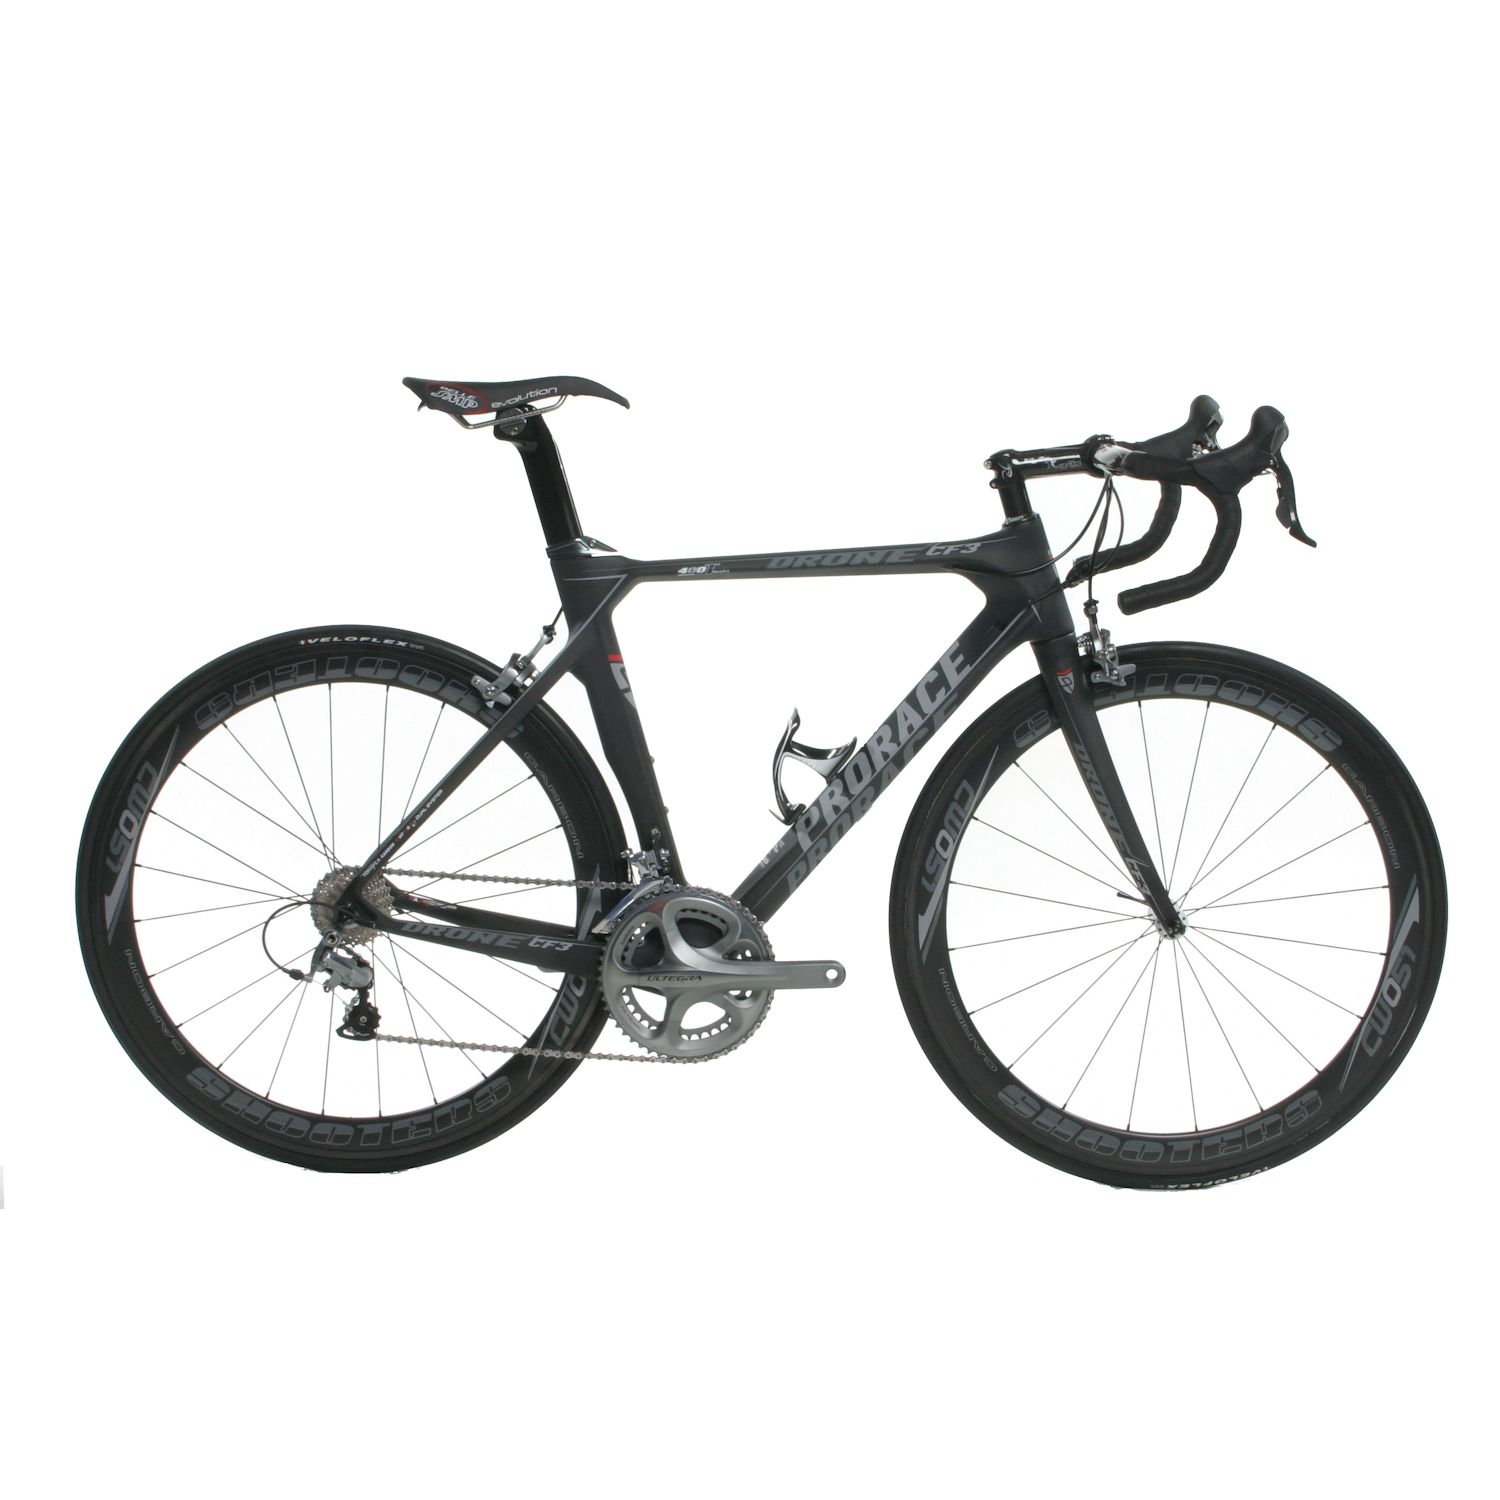 Prorace Drone CF-3 Road Bike - Athena Medium - Black